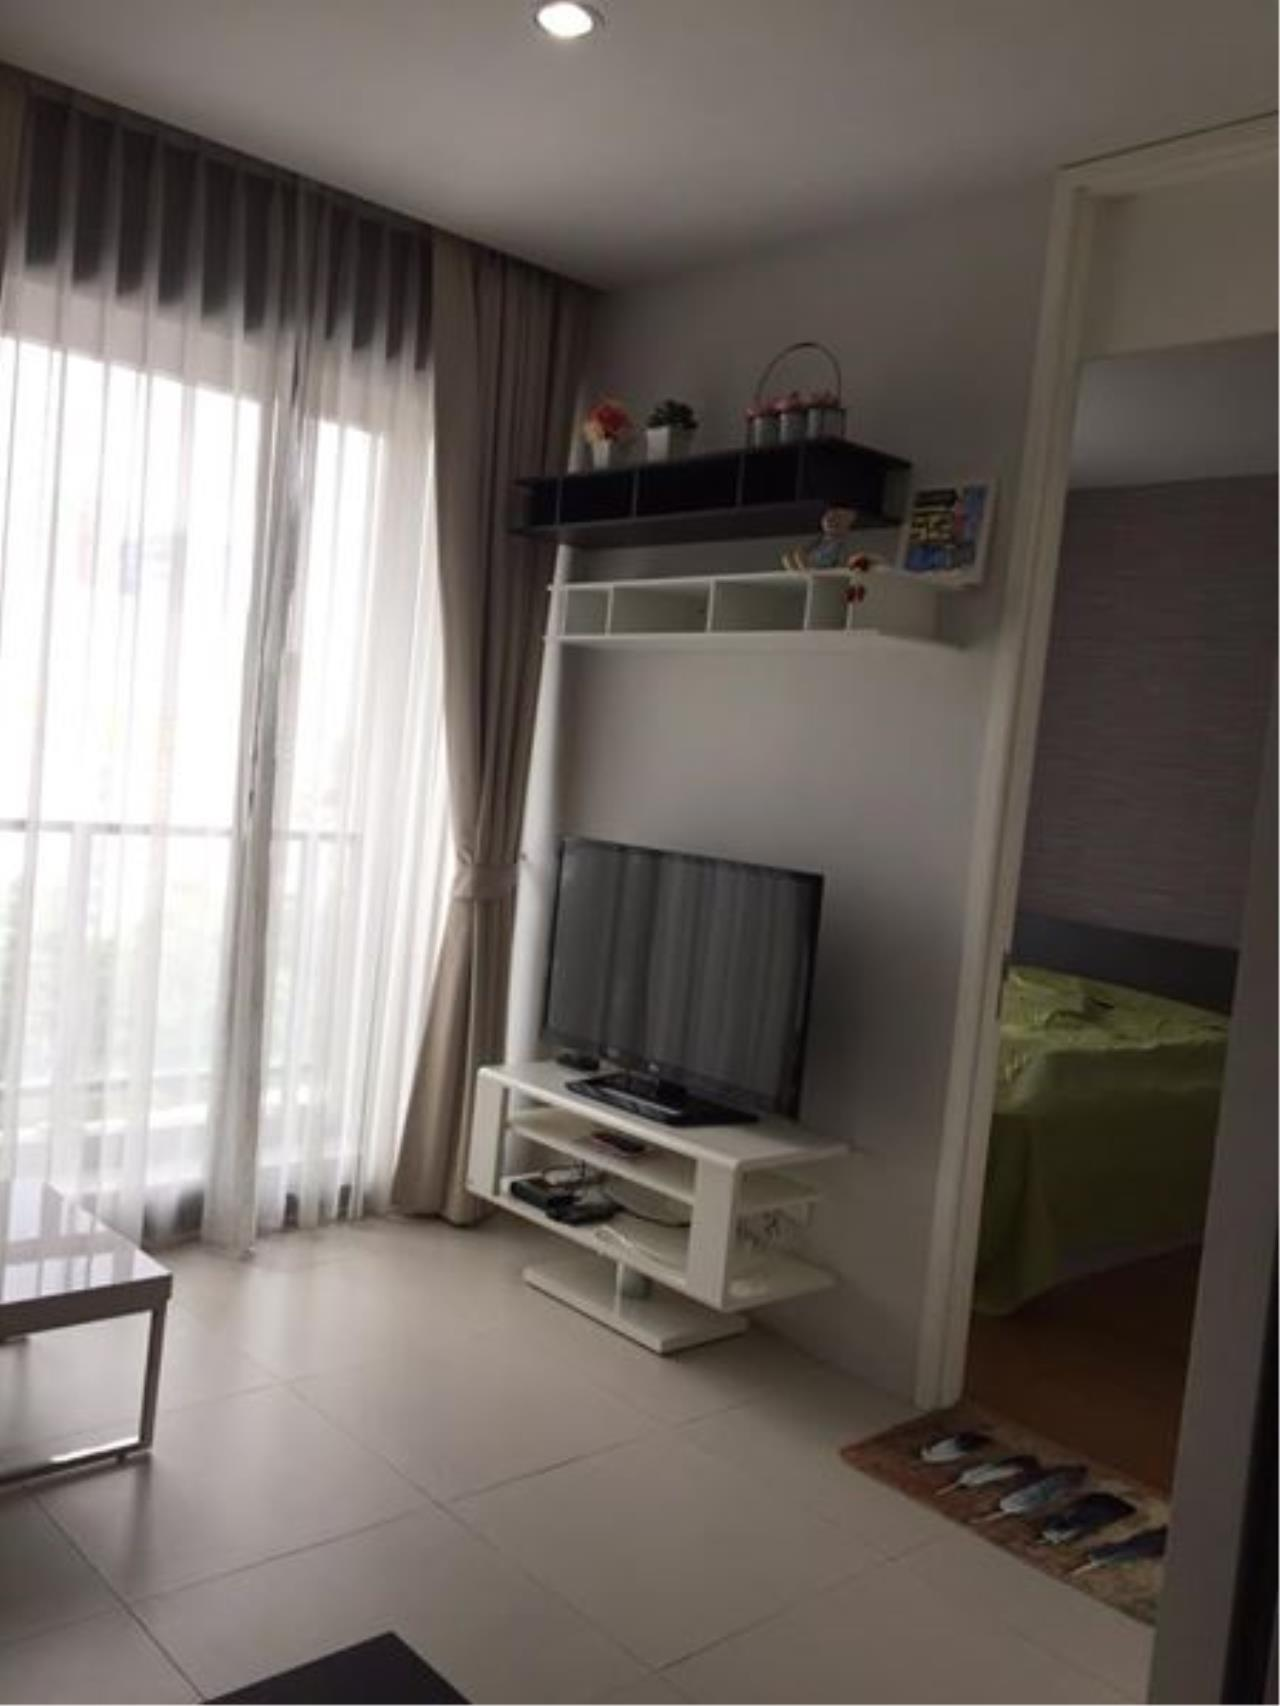 Agent - Thitiporn Sriboola Agency's M Condo Ladprao, condo high rise for rent, 300 meters to ladprao mrt station bangkok 1